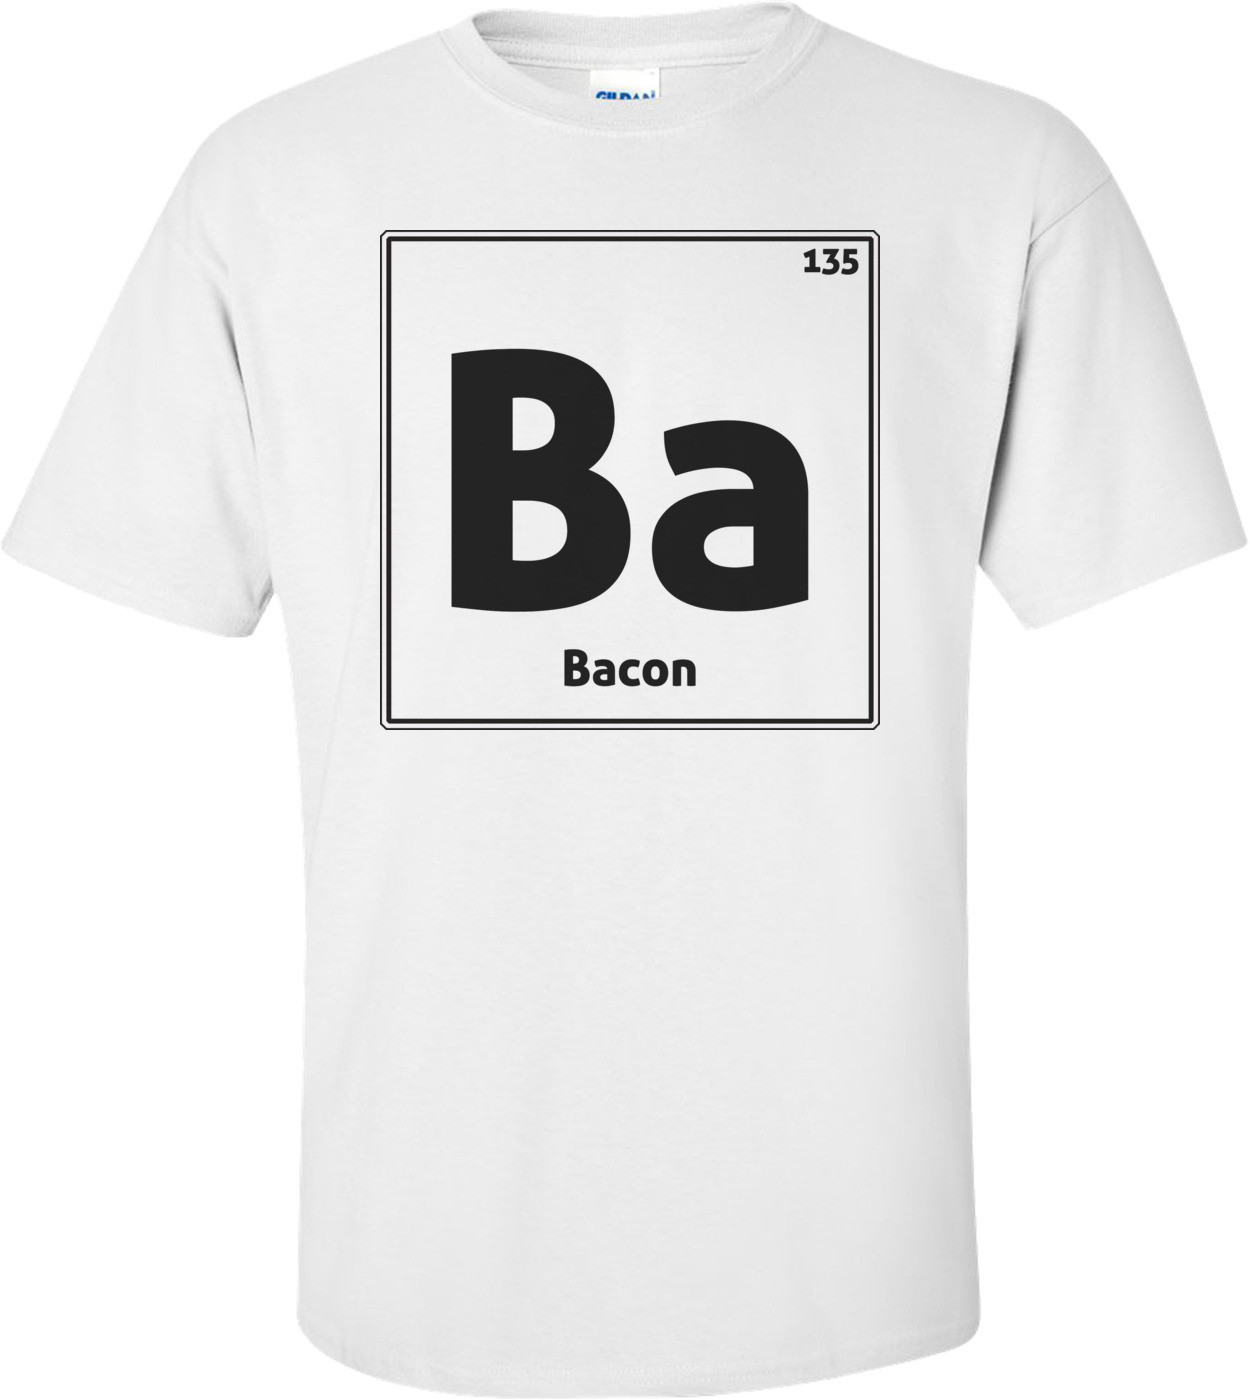 Bacon Periodic Table Shirt